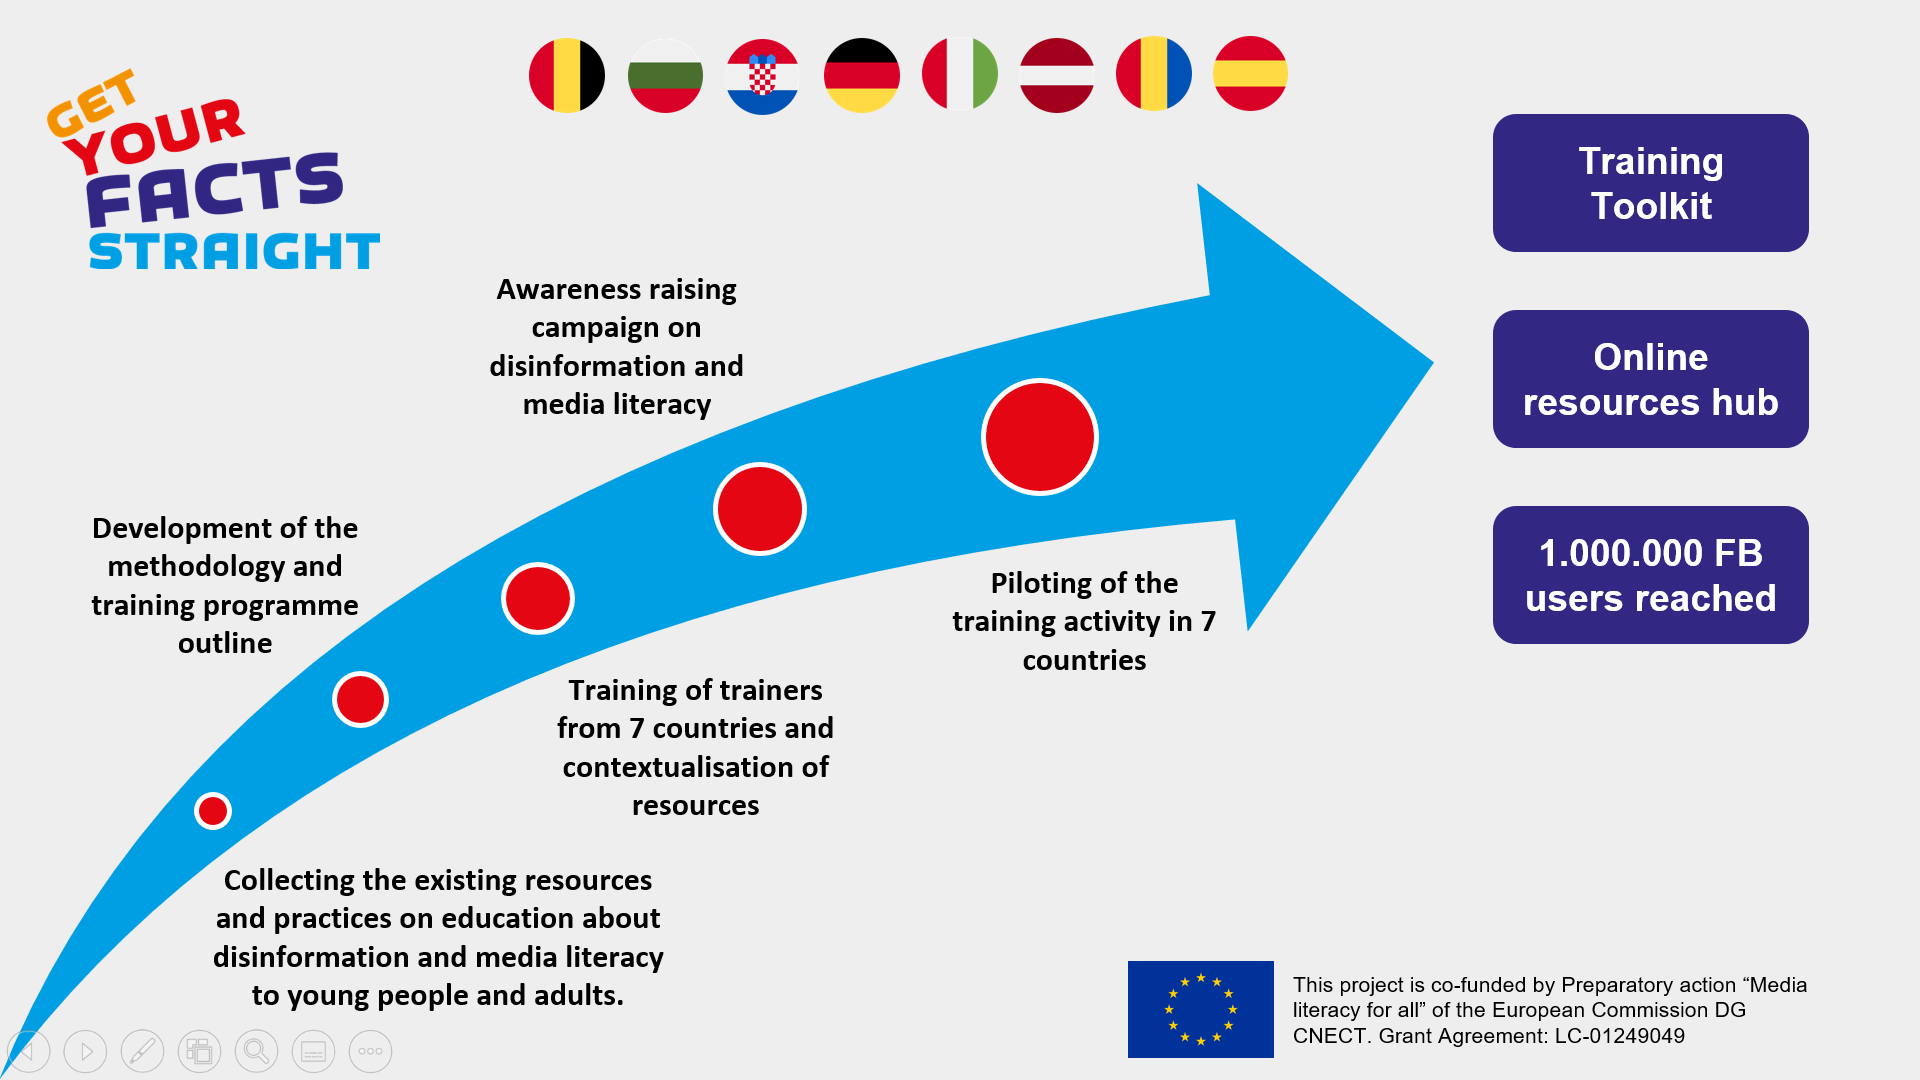 Get Your Facts Straight! project presented at the 18th European Week of Regions and Cities